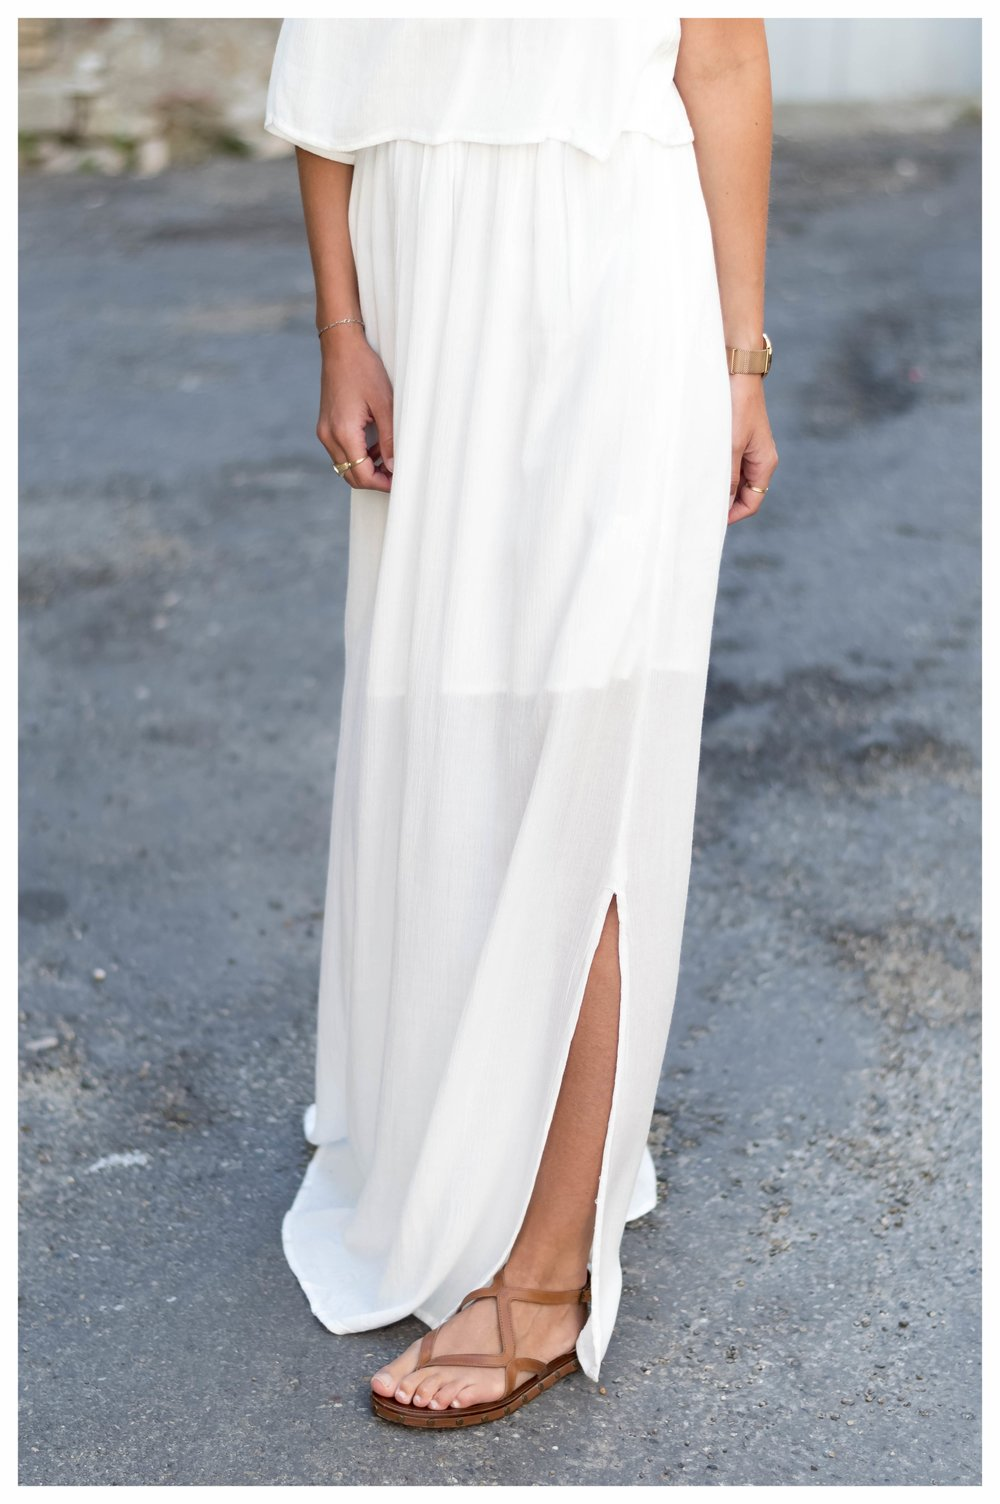 White Dress - OSIARAH.COM (14 sur 16).jpg